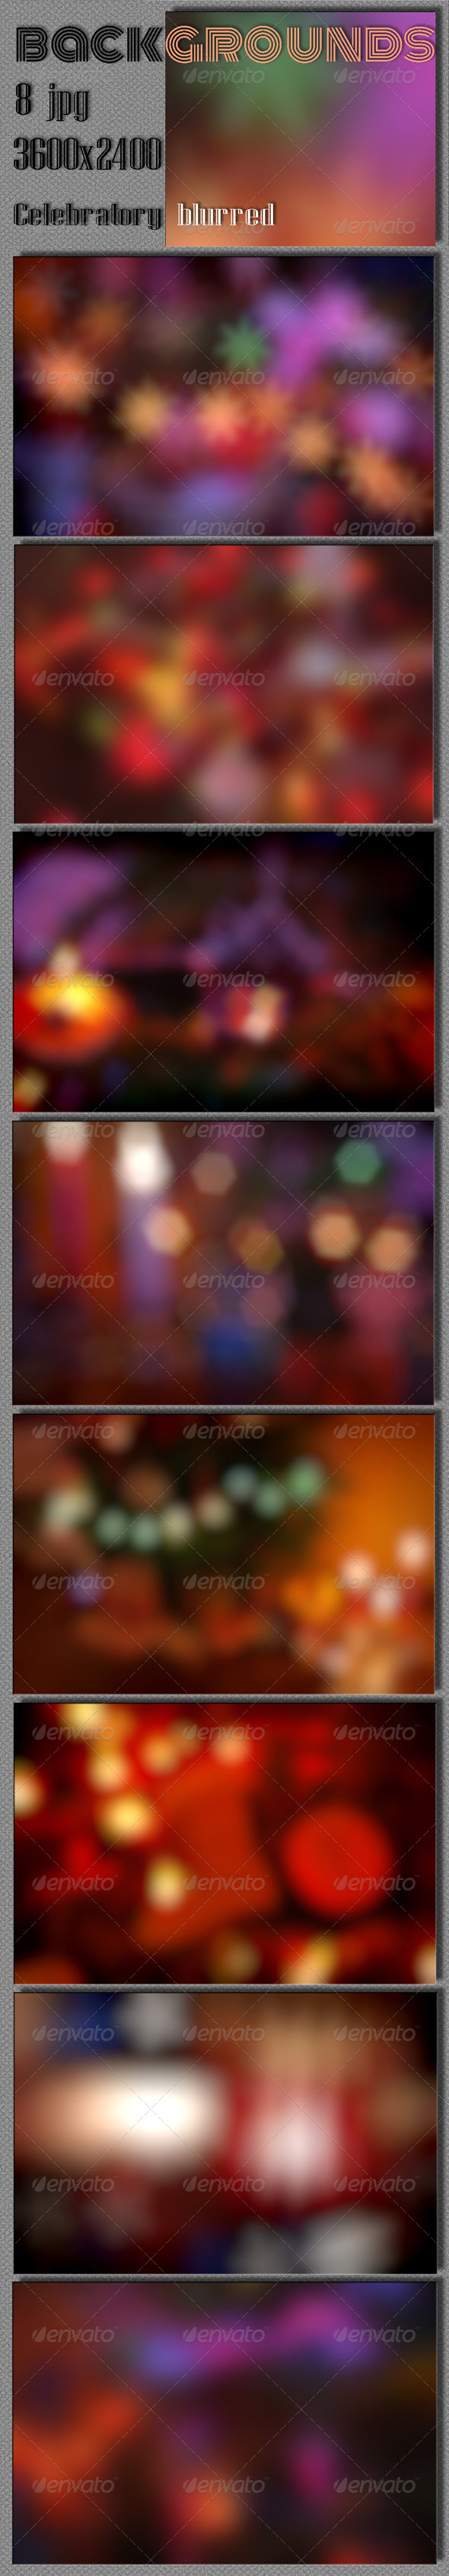 GraphicRiver Celebrate Blurred Background 5898415